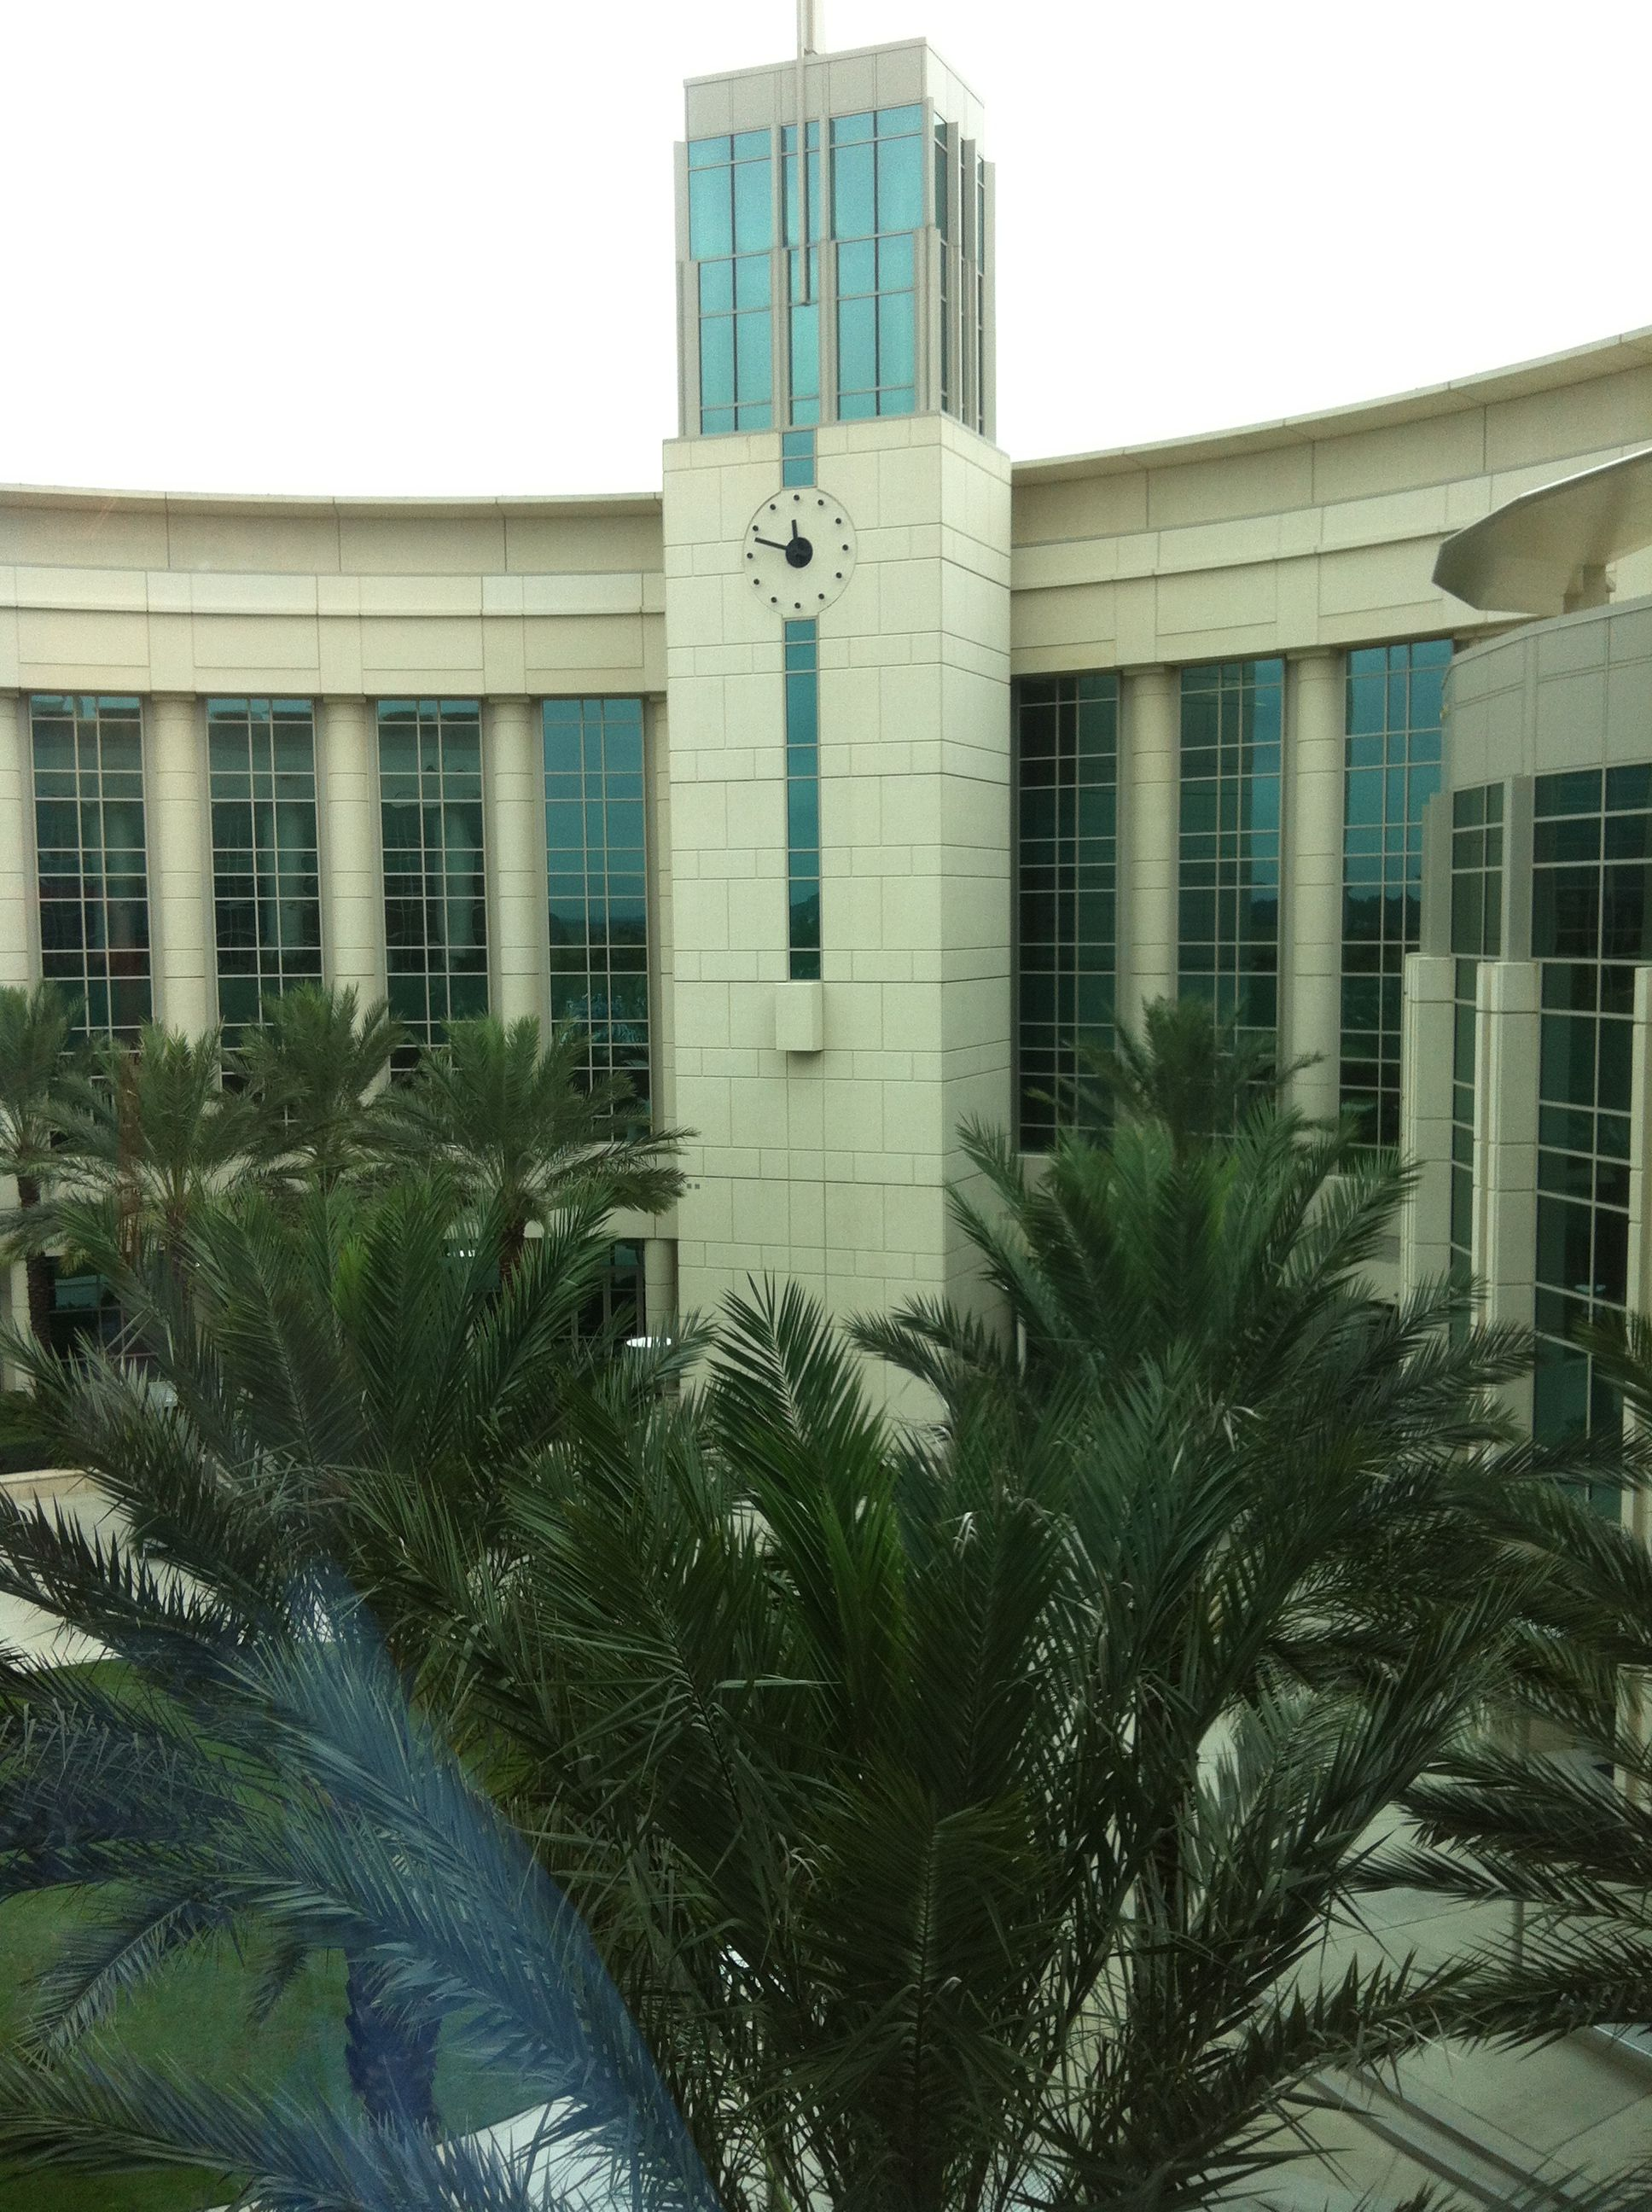 10152013 drw enews today at ucf college of medicine